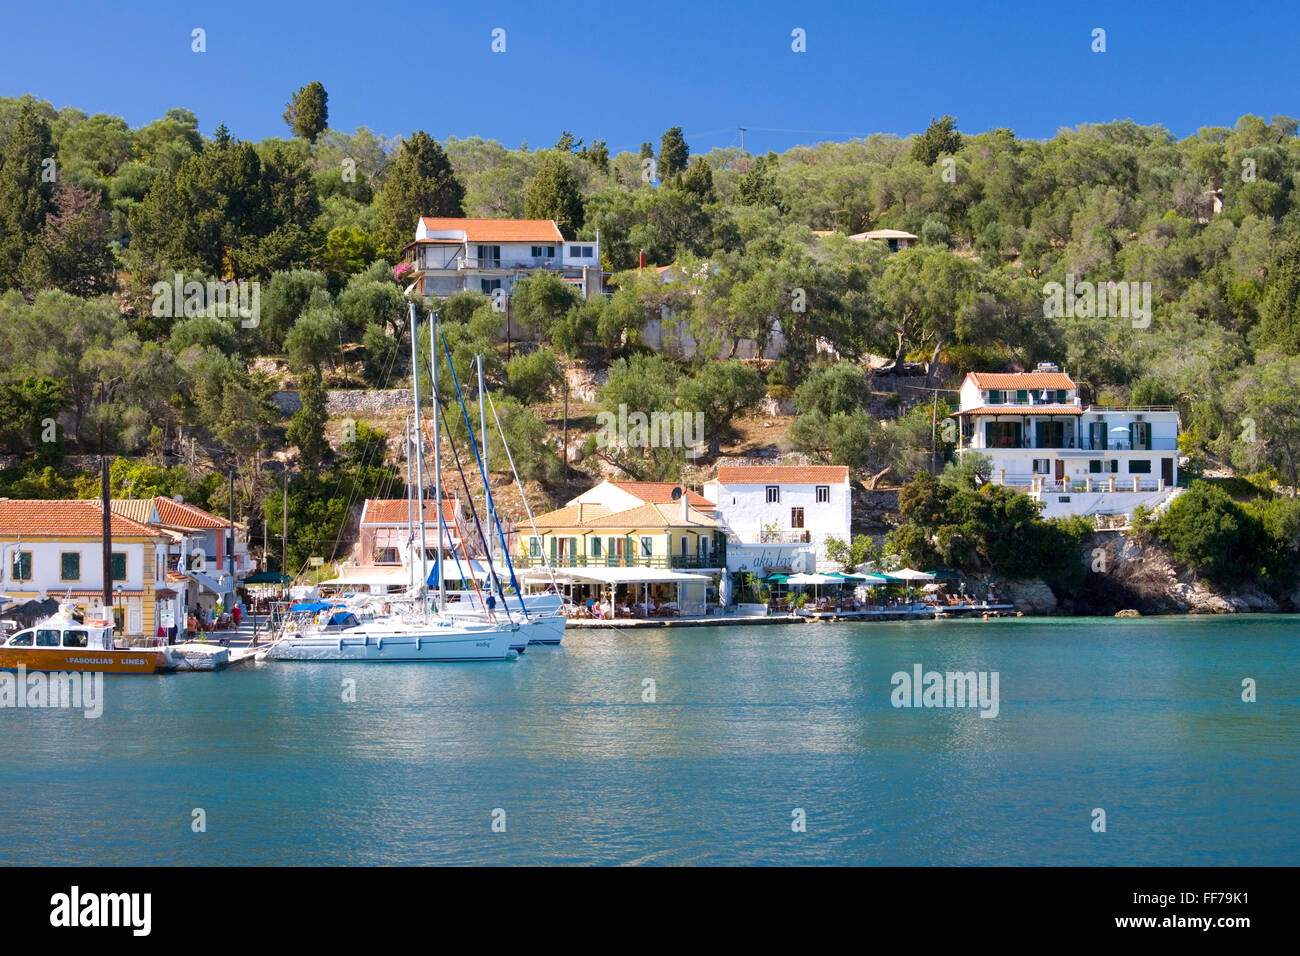 Lakka, Paxos, Ionian Islands, Greece. View to the village across the clear turquoise waters of Lakka Bay. - Stock Image